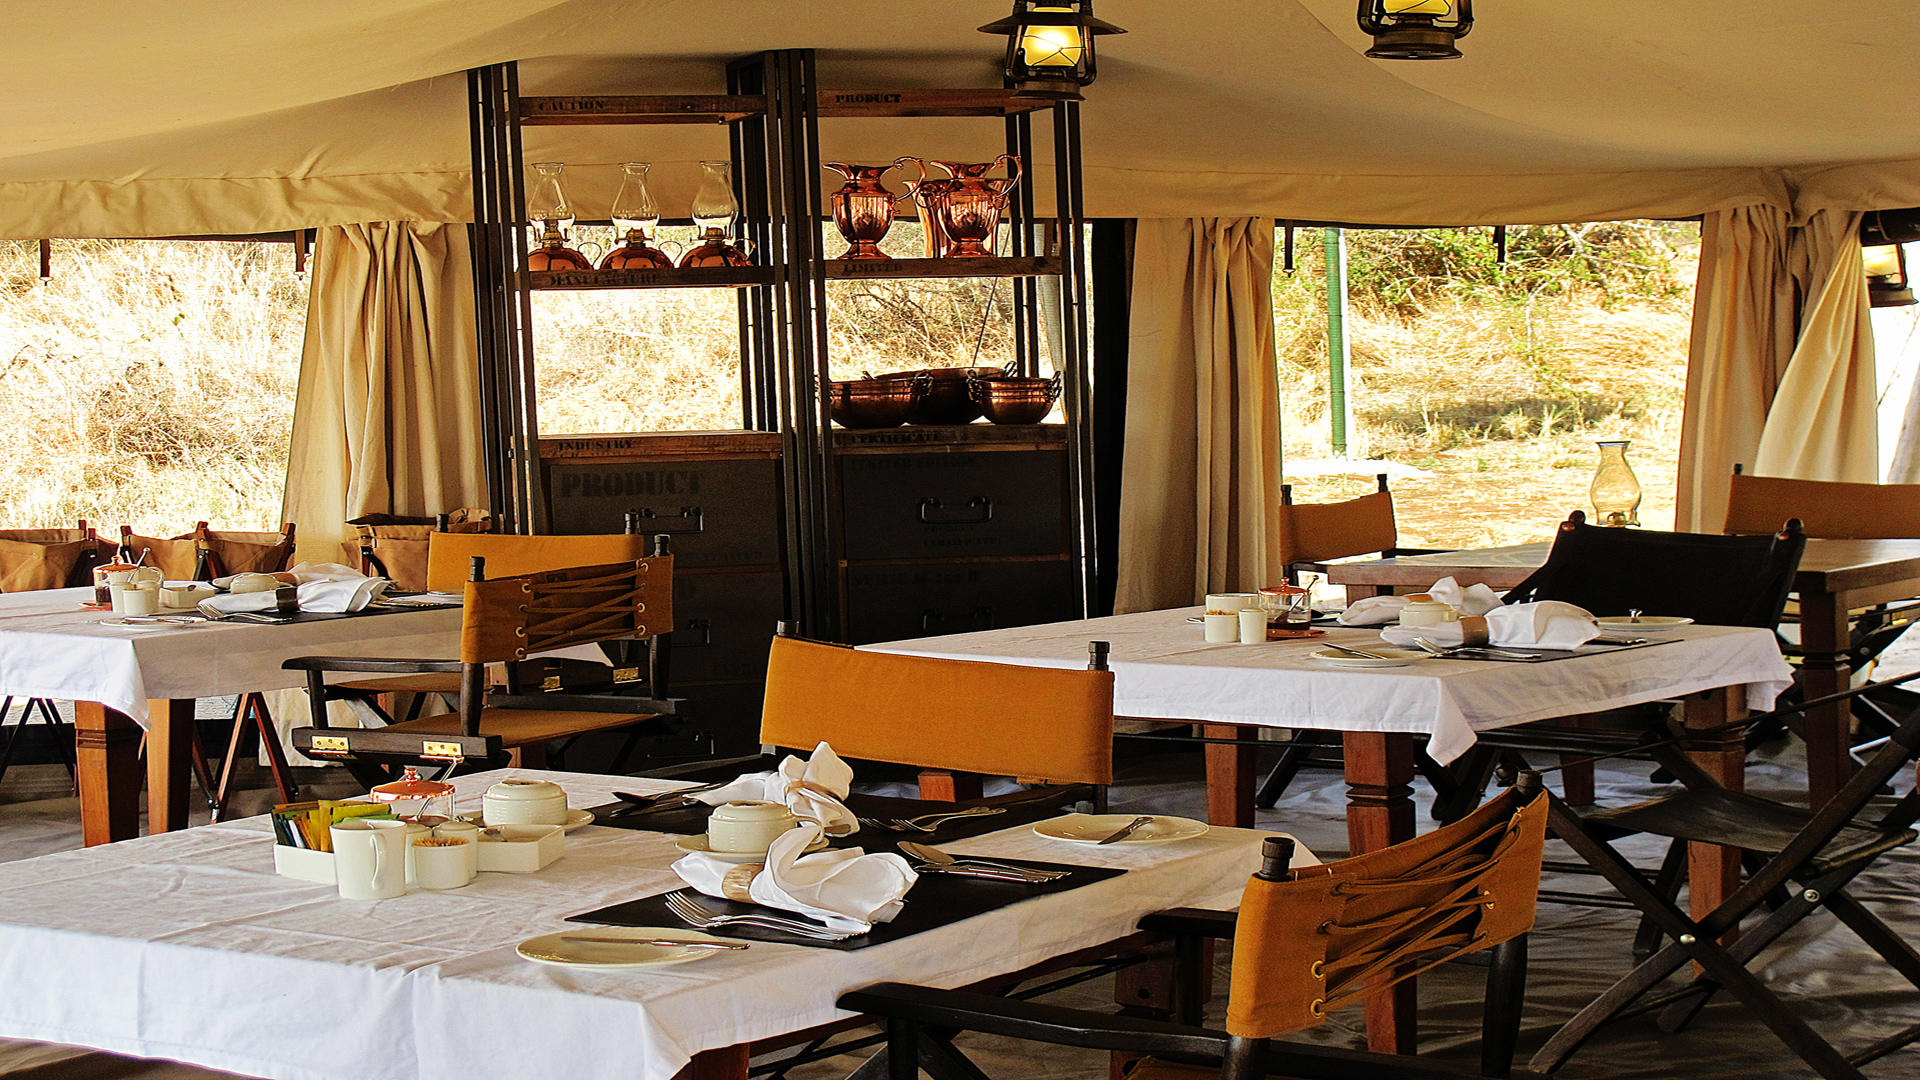 Serengeti-Pioneer-Camp---Breakfast-Tent-Interior